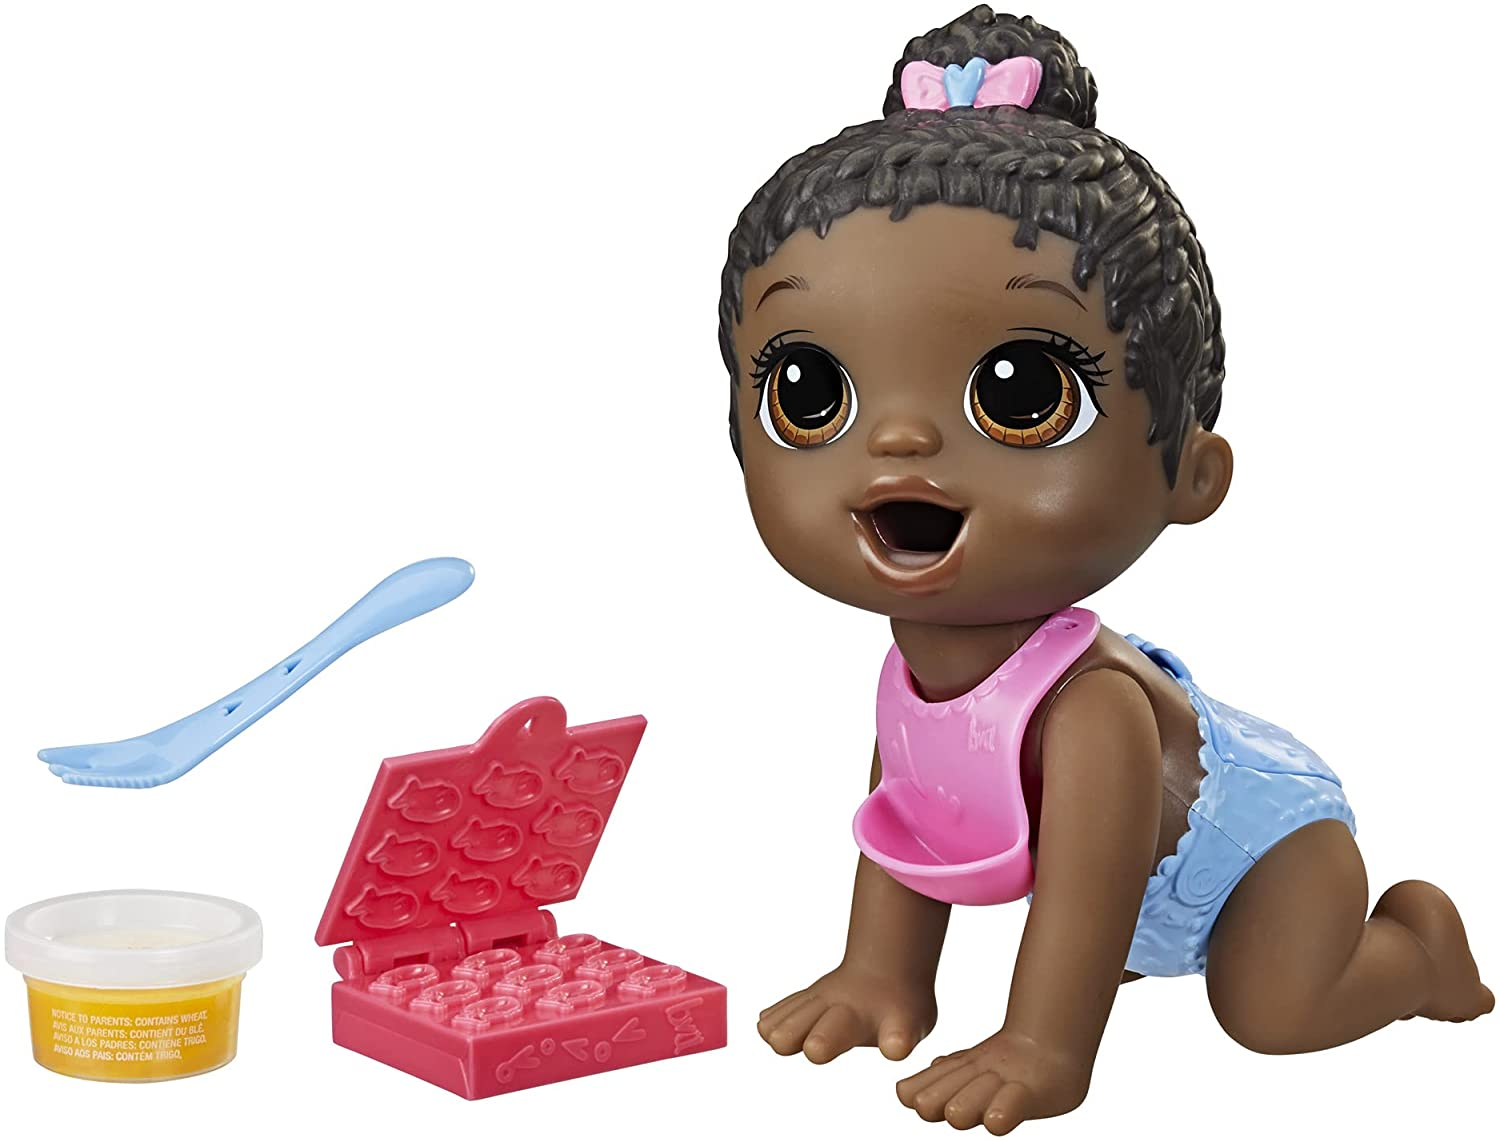 Baby Alive Lil Snacks Doll, Eats and Poops, Snack-Themed 8-Inch Baby Doll, Snack Box Mold, Toy for Kids Ages 3 and Up, Black Hair